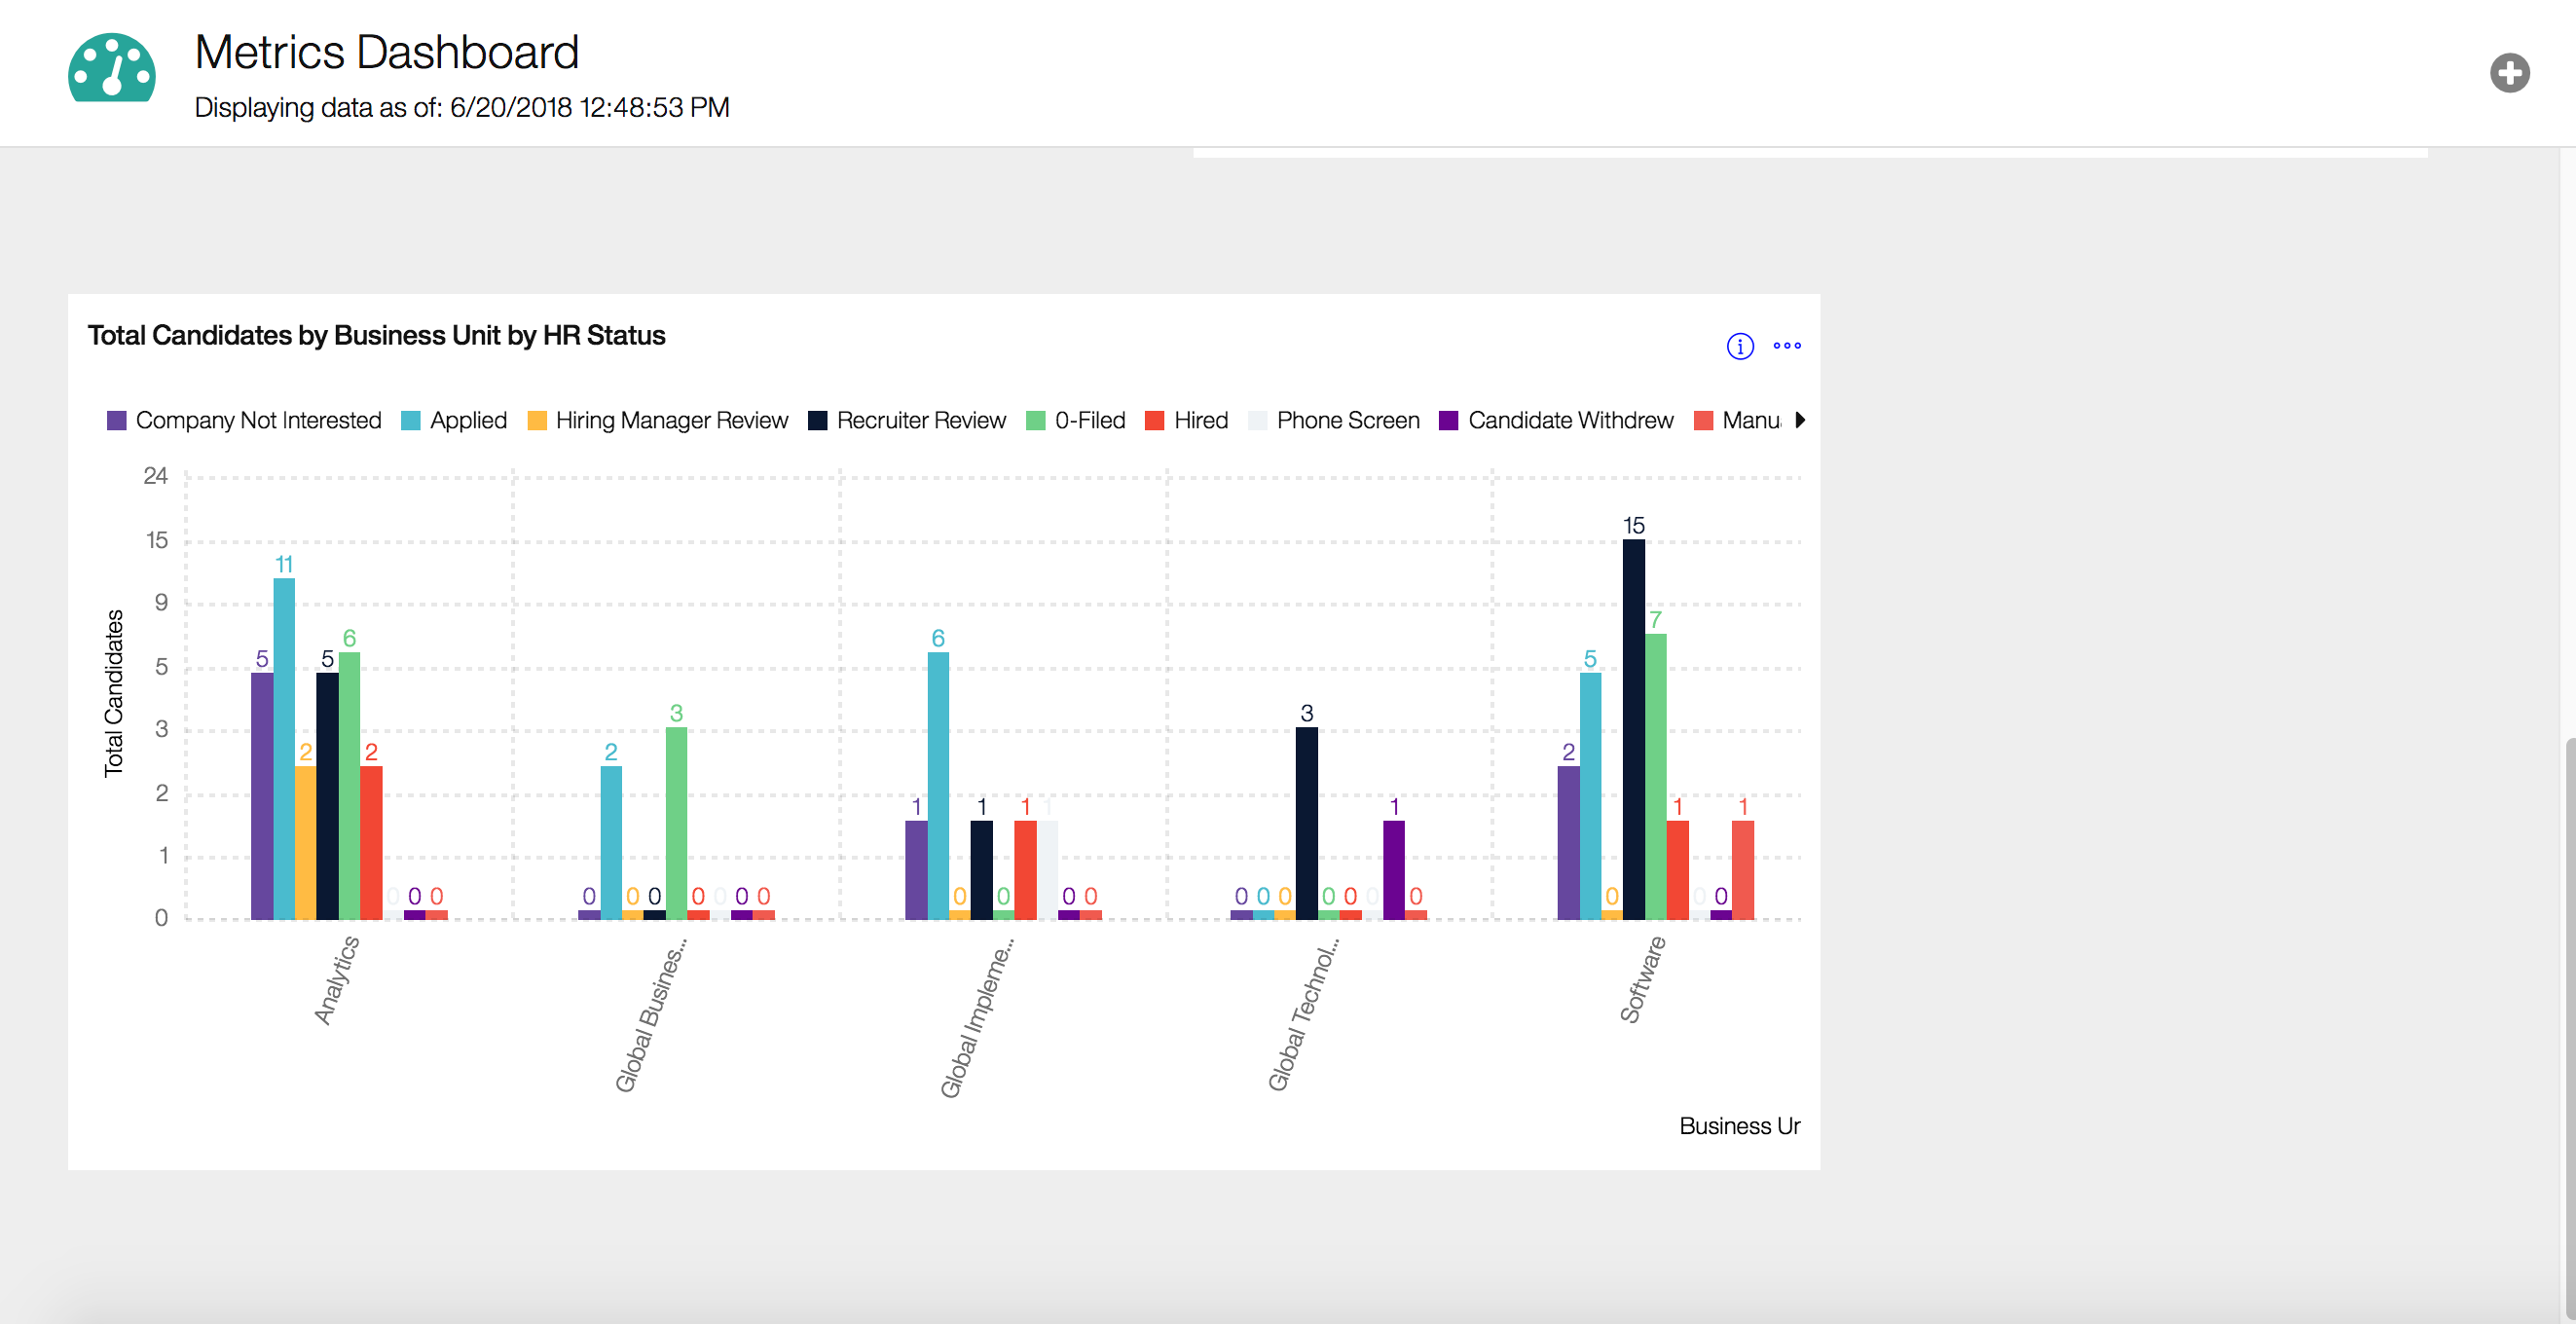 IBM Talent Management screenshot: View total candidates by business unit and HR status